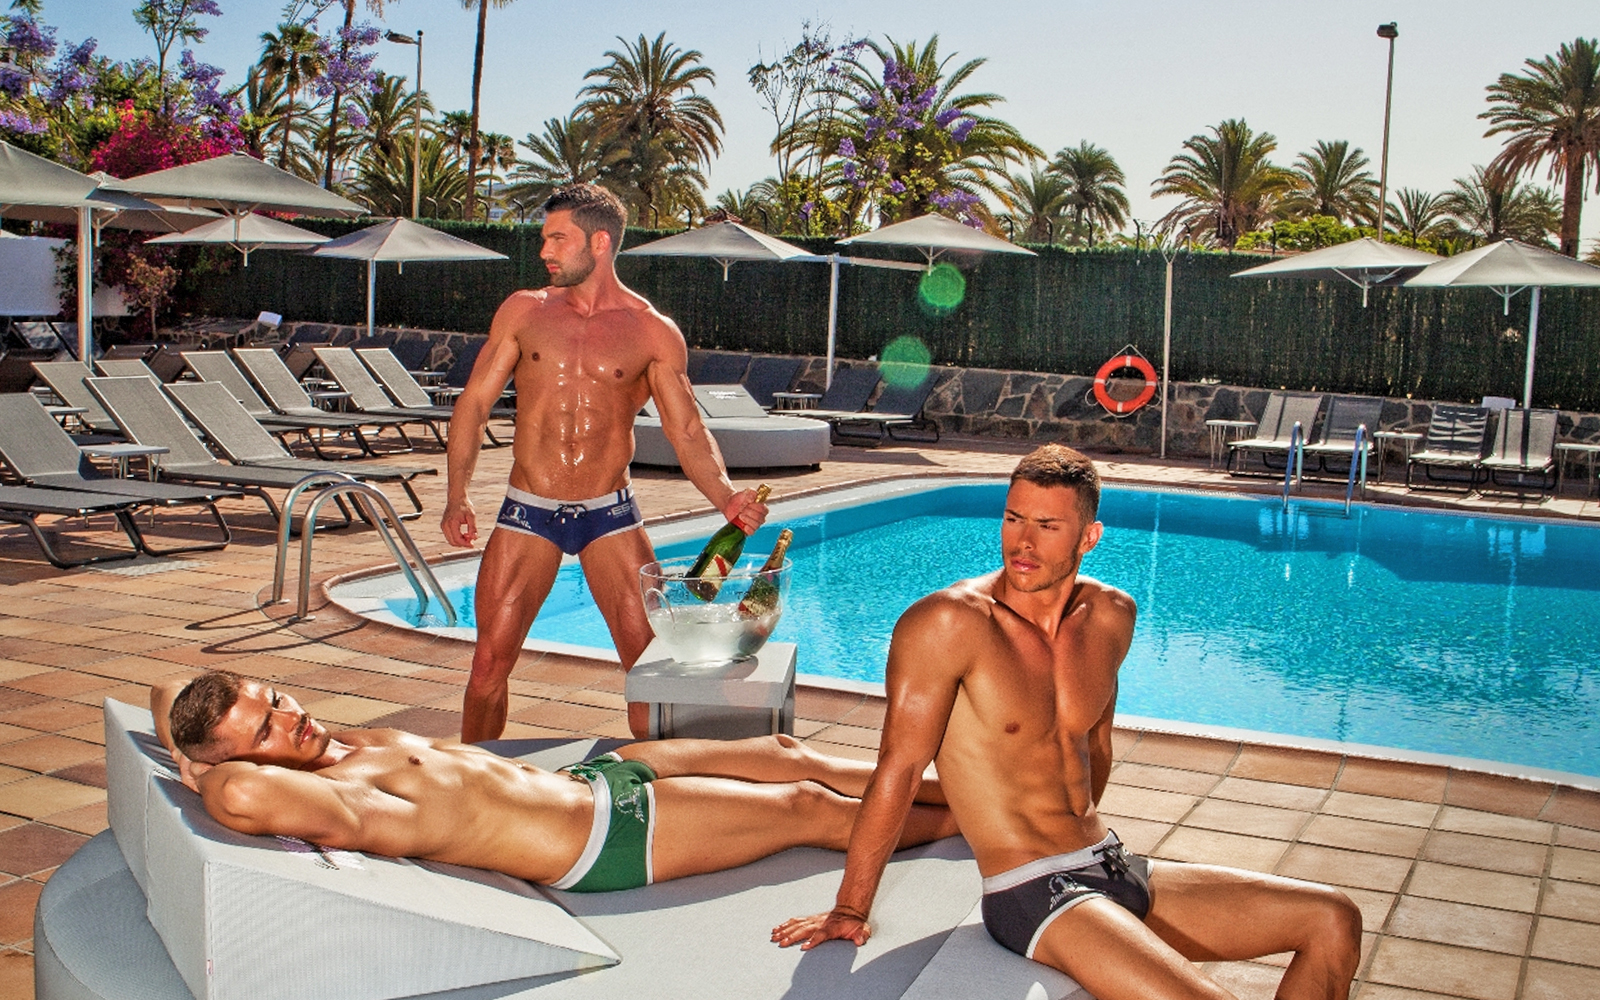 Gay las vegas the best gay hotels, bars, clubs more